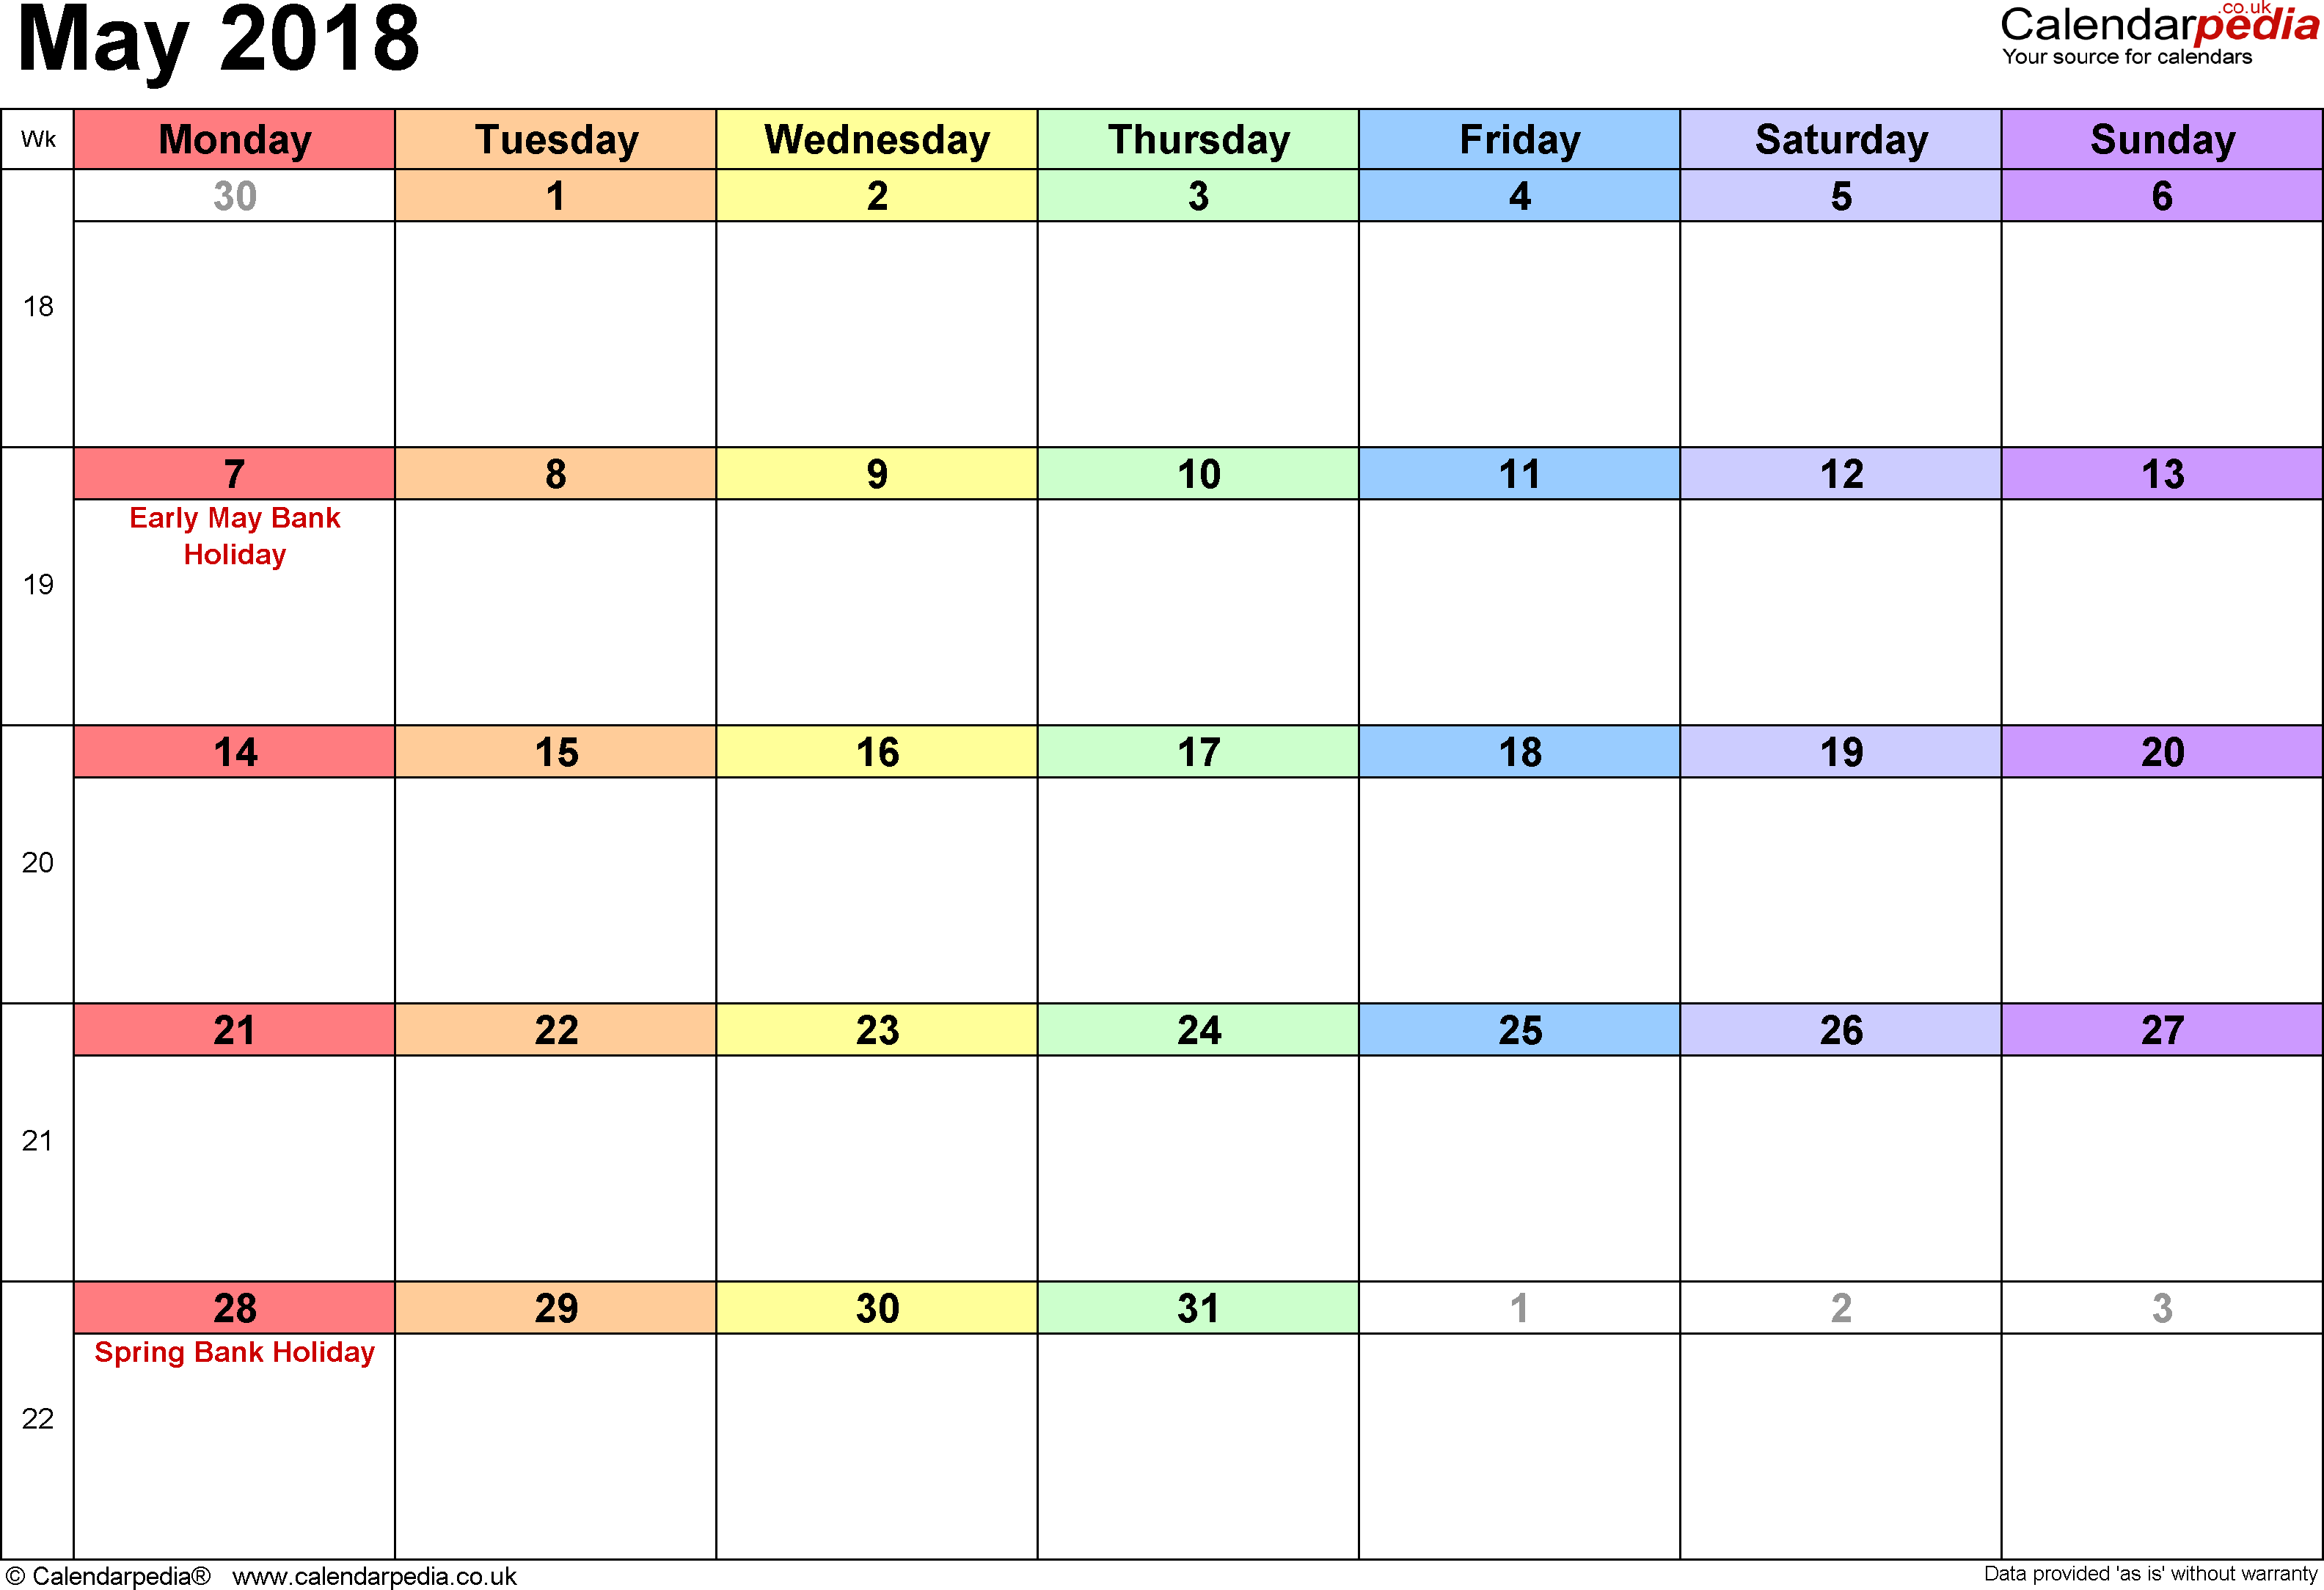 Calendar May 2018, landscape orientation, 1 page, with UK bank holidays and week numbers